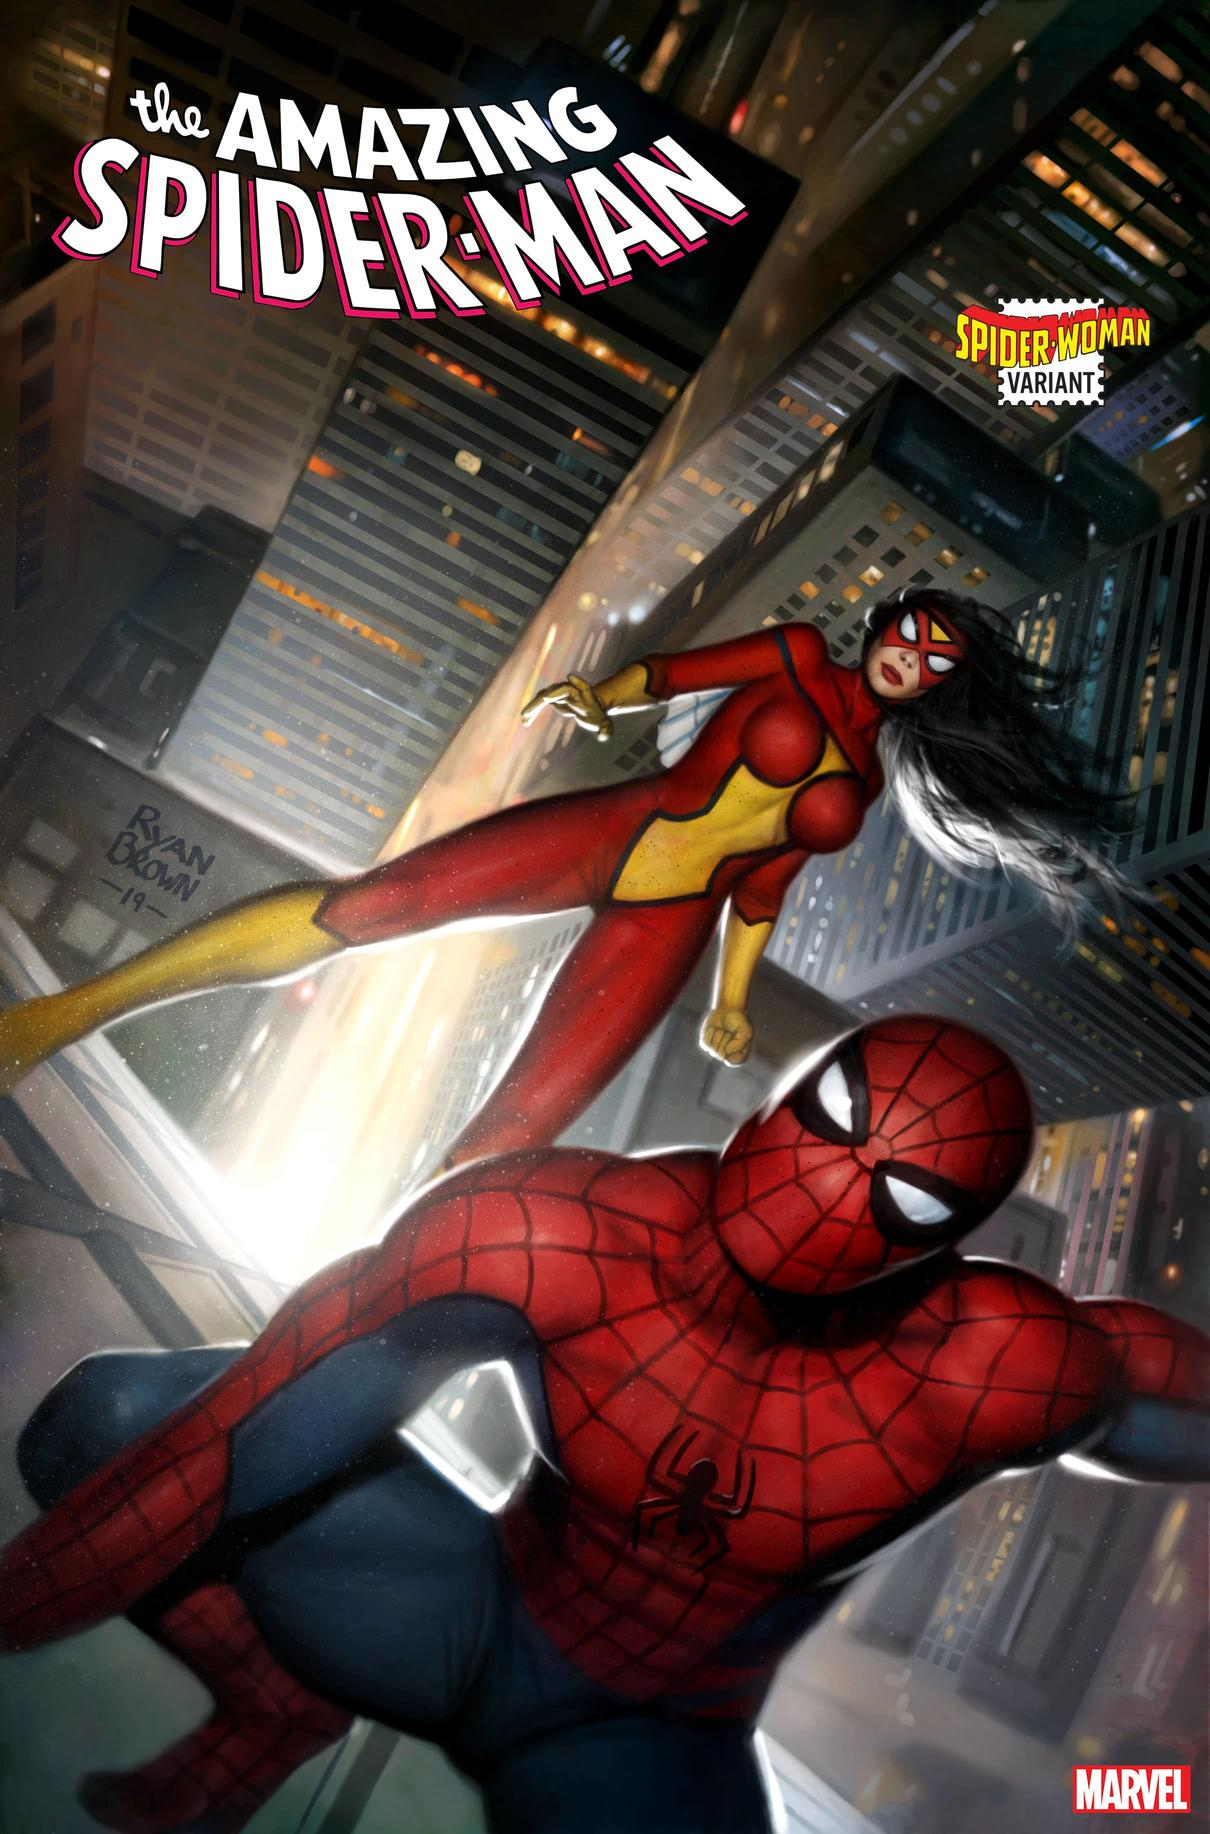 AMAZING SPIDER-MAN #41 SPIDER-WOMAN VARIANT by RYAN BROWN